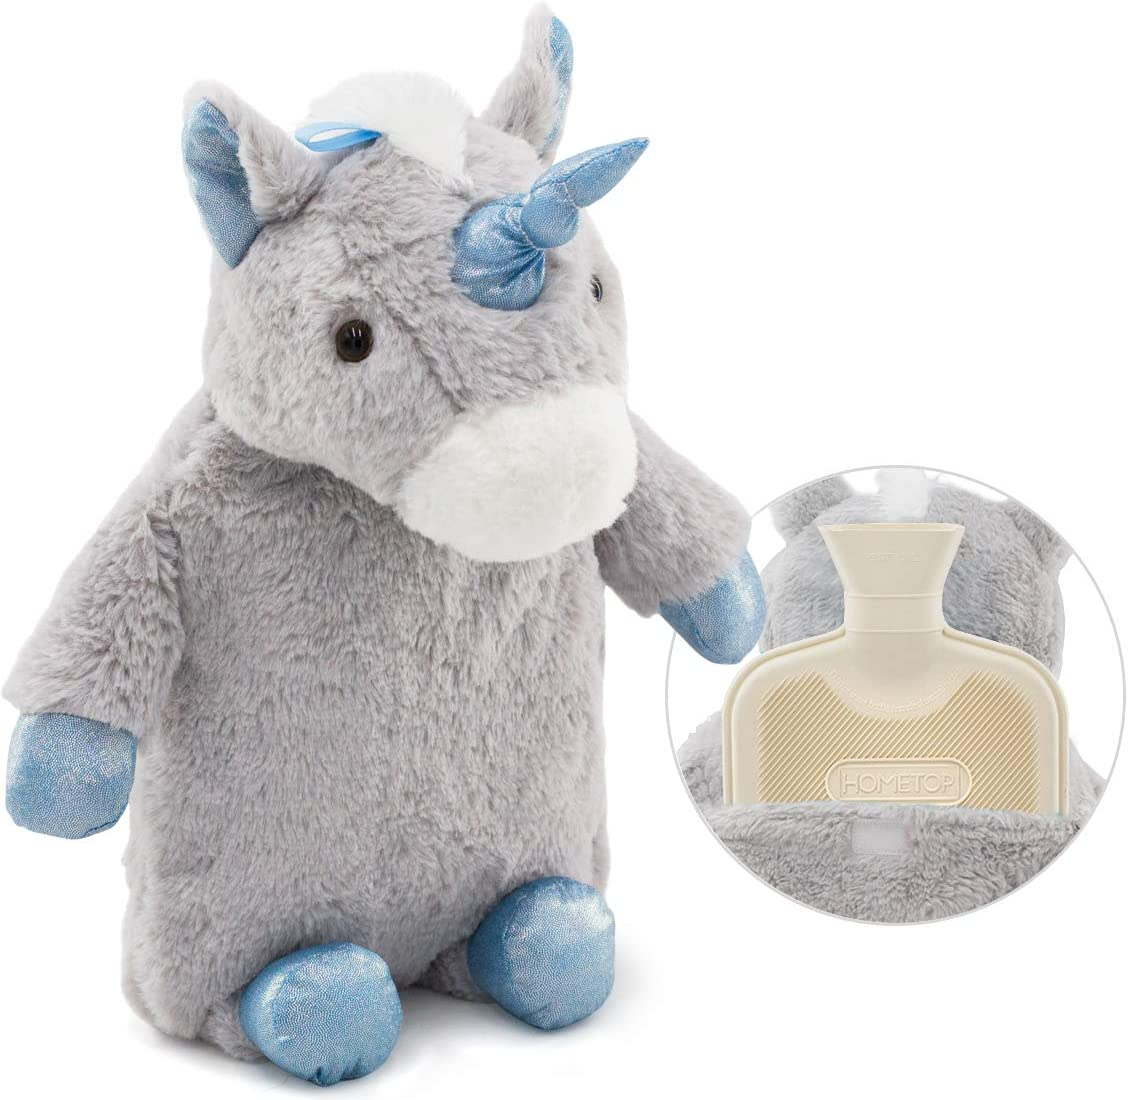 HomeTop Premium Classic Rubber Hot Water Bottle with Cute Unicorn Cover (1L, Gray)